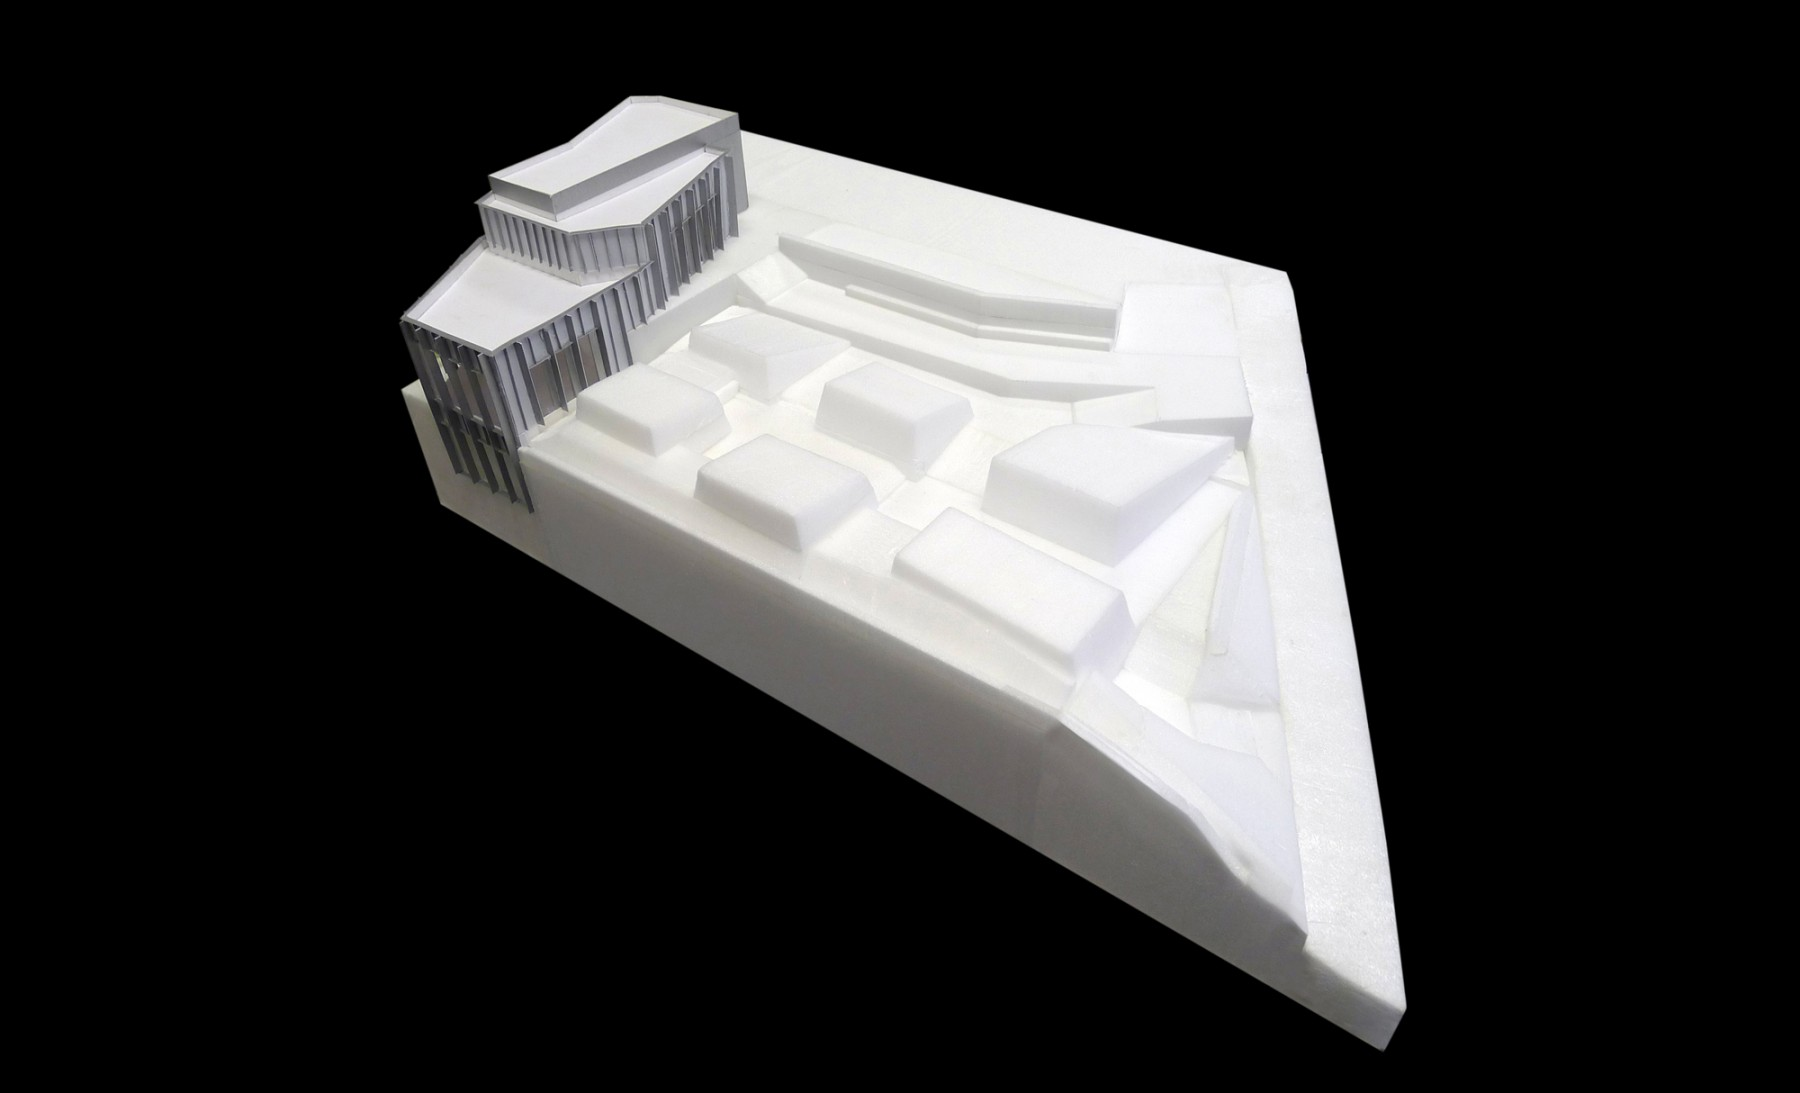 Tate-St-Ives-Cornwall-council-new-Extension-competition-Art-gallery-education-Jamie-Fobert-Architects-site-model